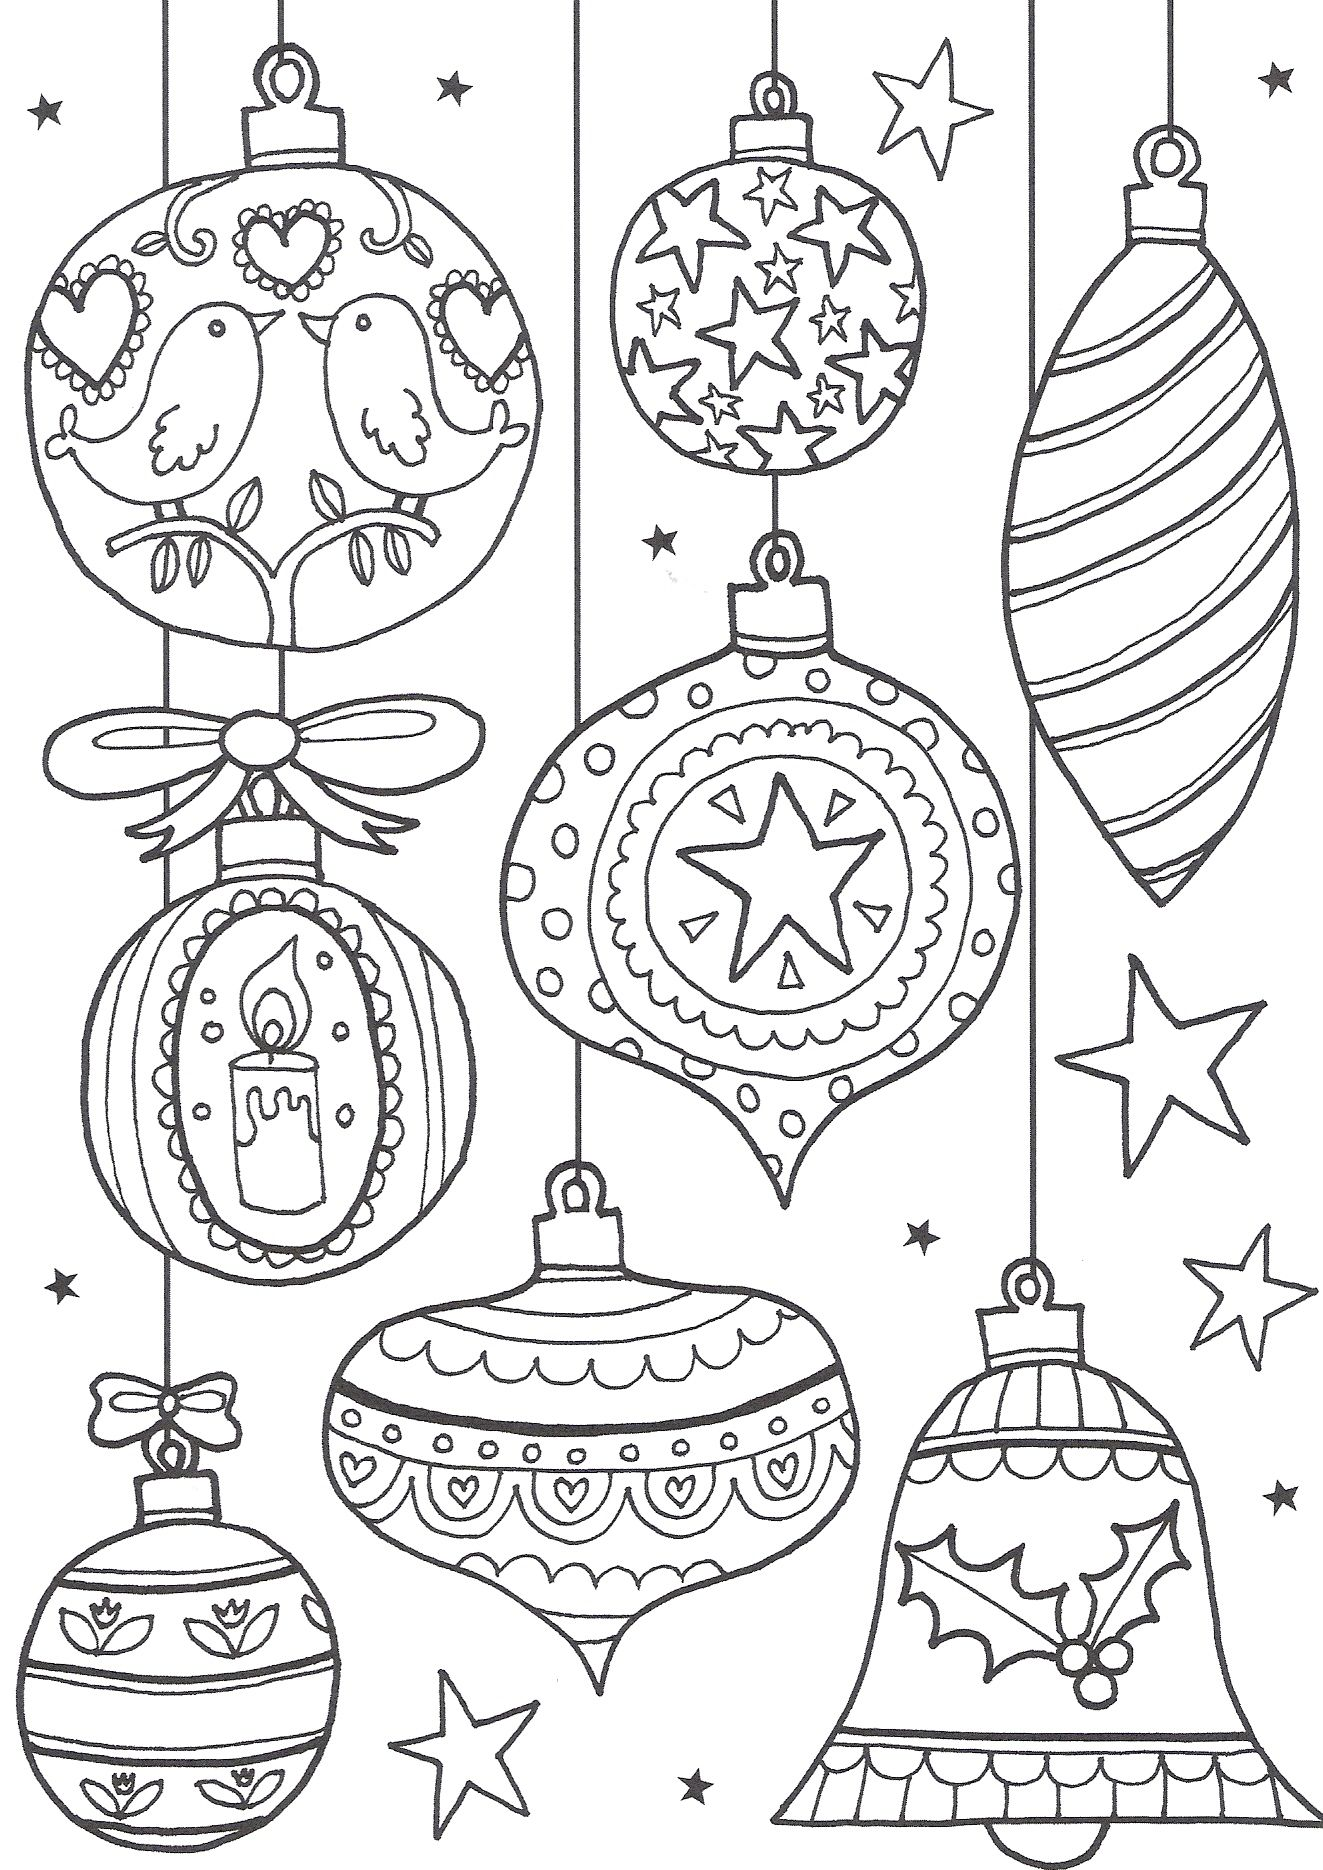 Christmas Detailed Coloring Pages With Free Colouring For Adults The Ultimate Roundup